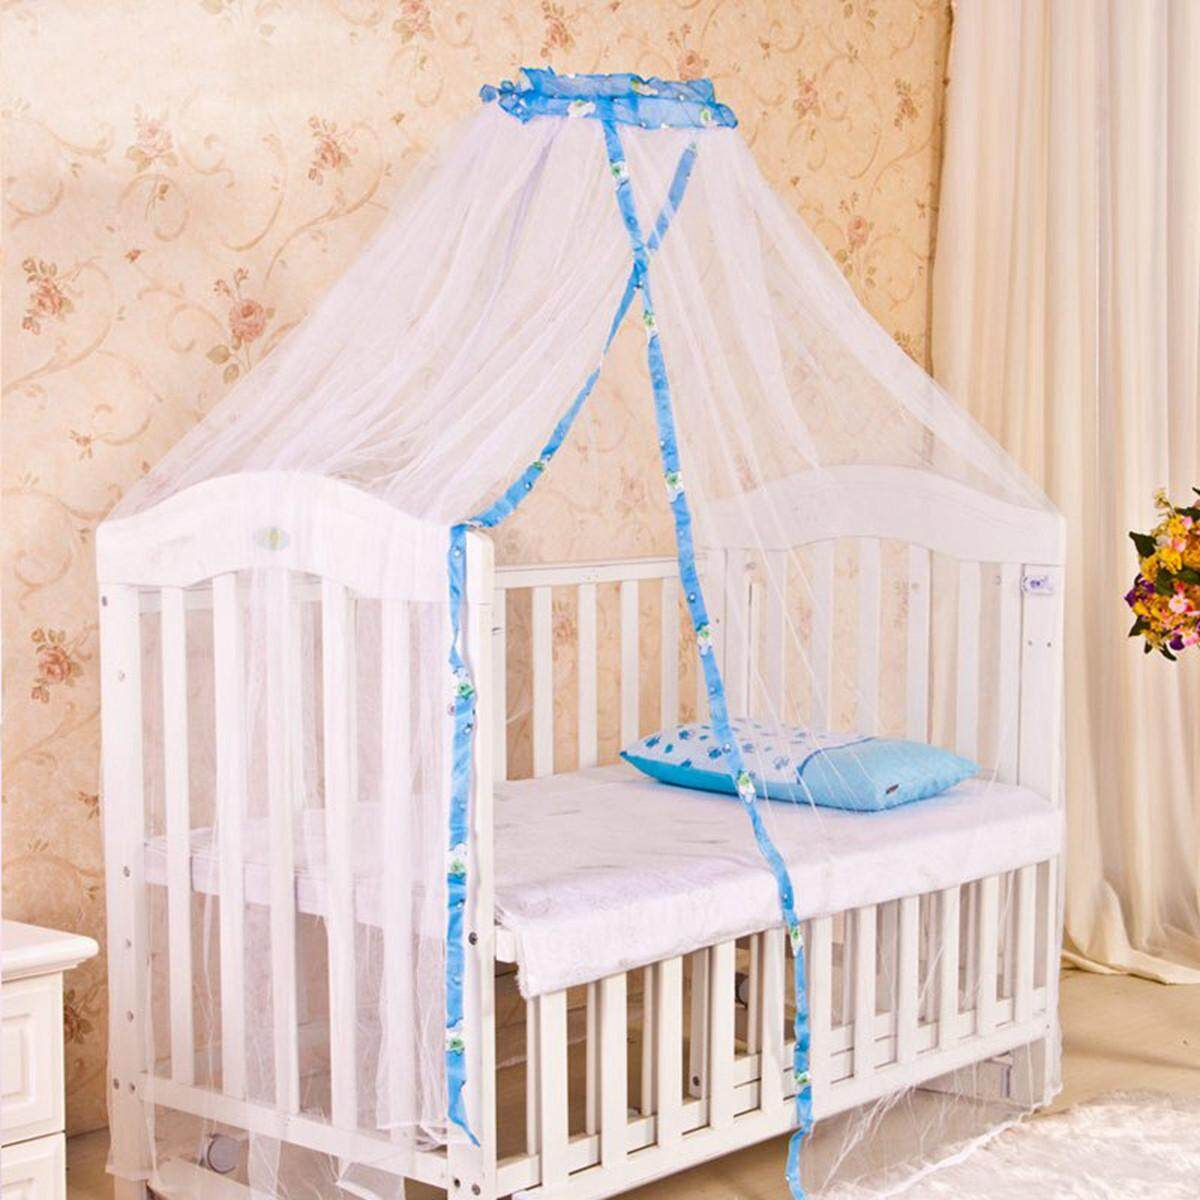 Baby Infant Nursery Mosquito Bedding Crib Canopy Net Hanging Babe Dome Summer Blue By Glimmer.